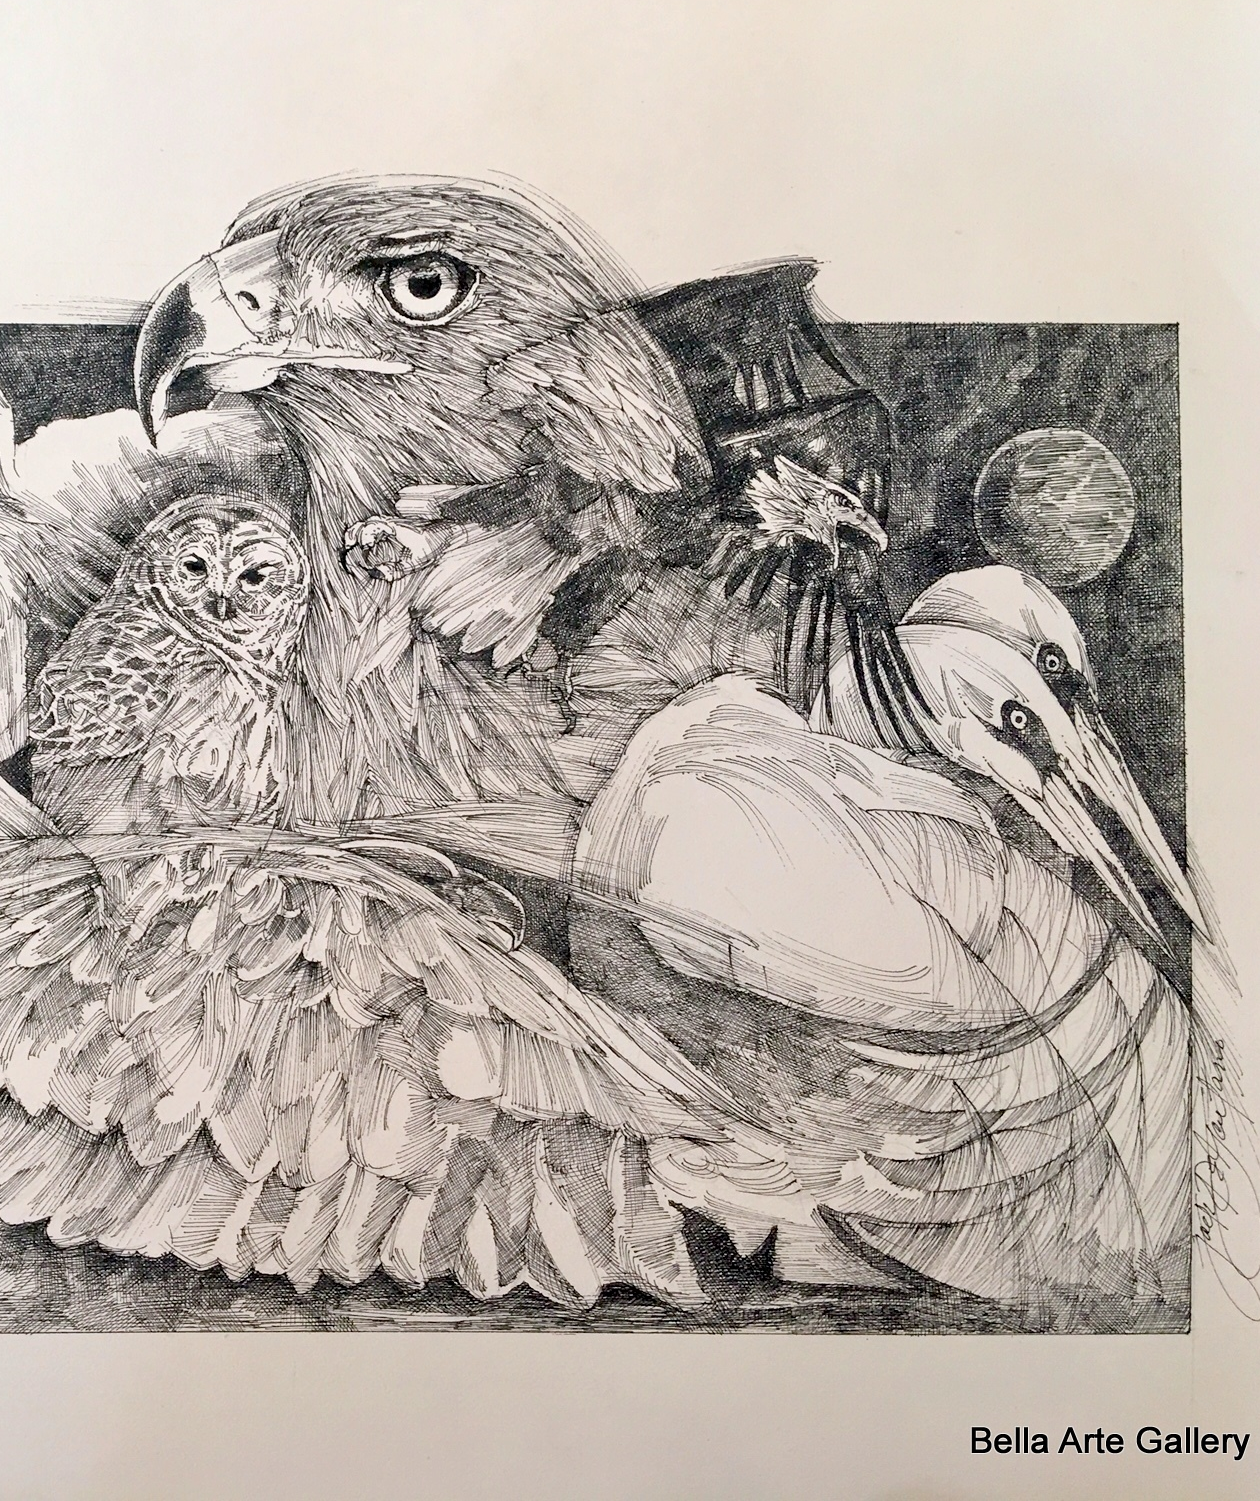 pen & ink, animal collage, eagle, owl, birds, artist Jack DeGaetano, Virginia artist, wild animals, furry animals,sea animal